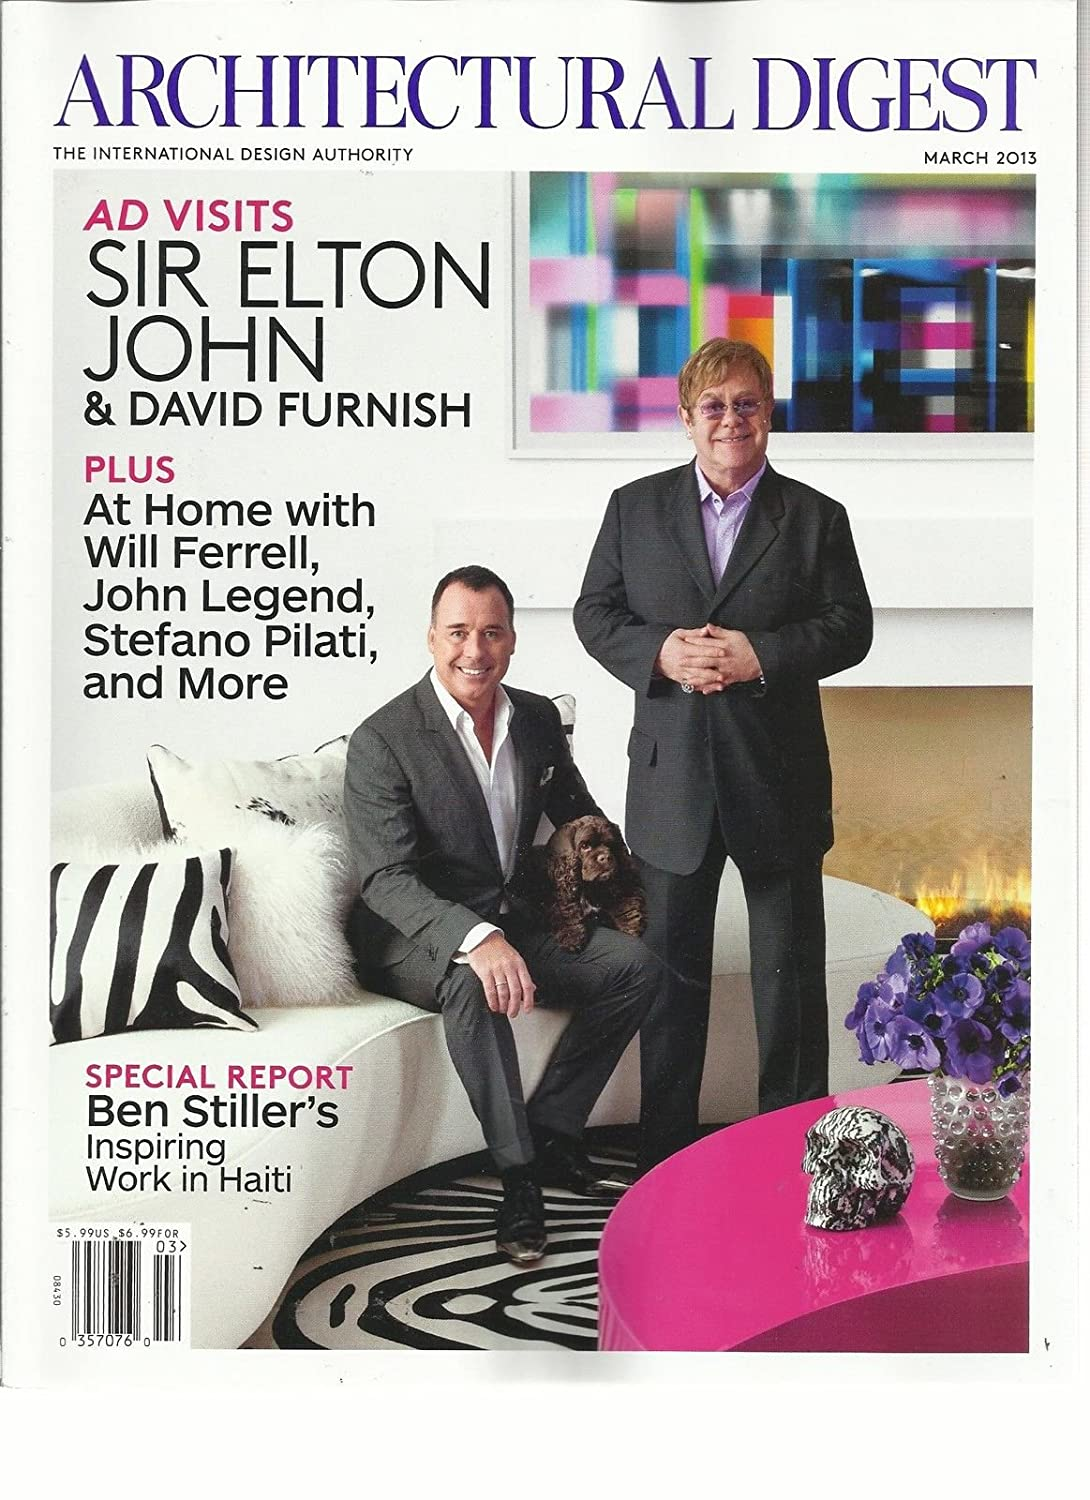 ARCHITECTURAL DIGEST, MARCH, 2013 (THE INTERNATIONAL DESIGN AUTHORITY) s3457